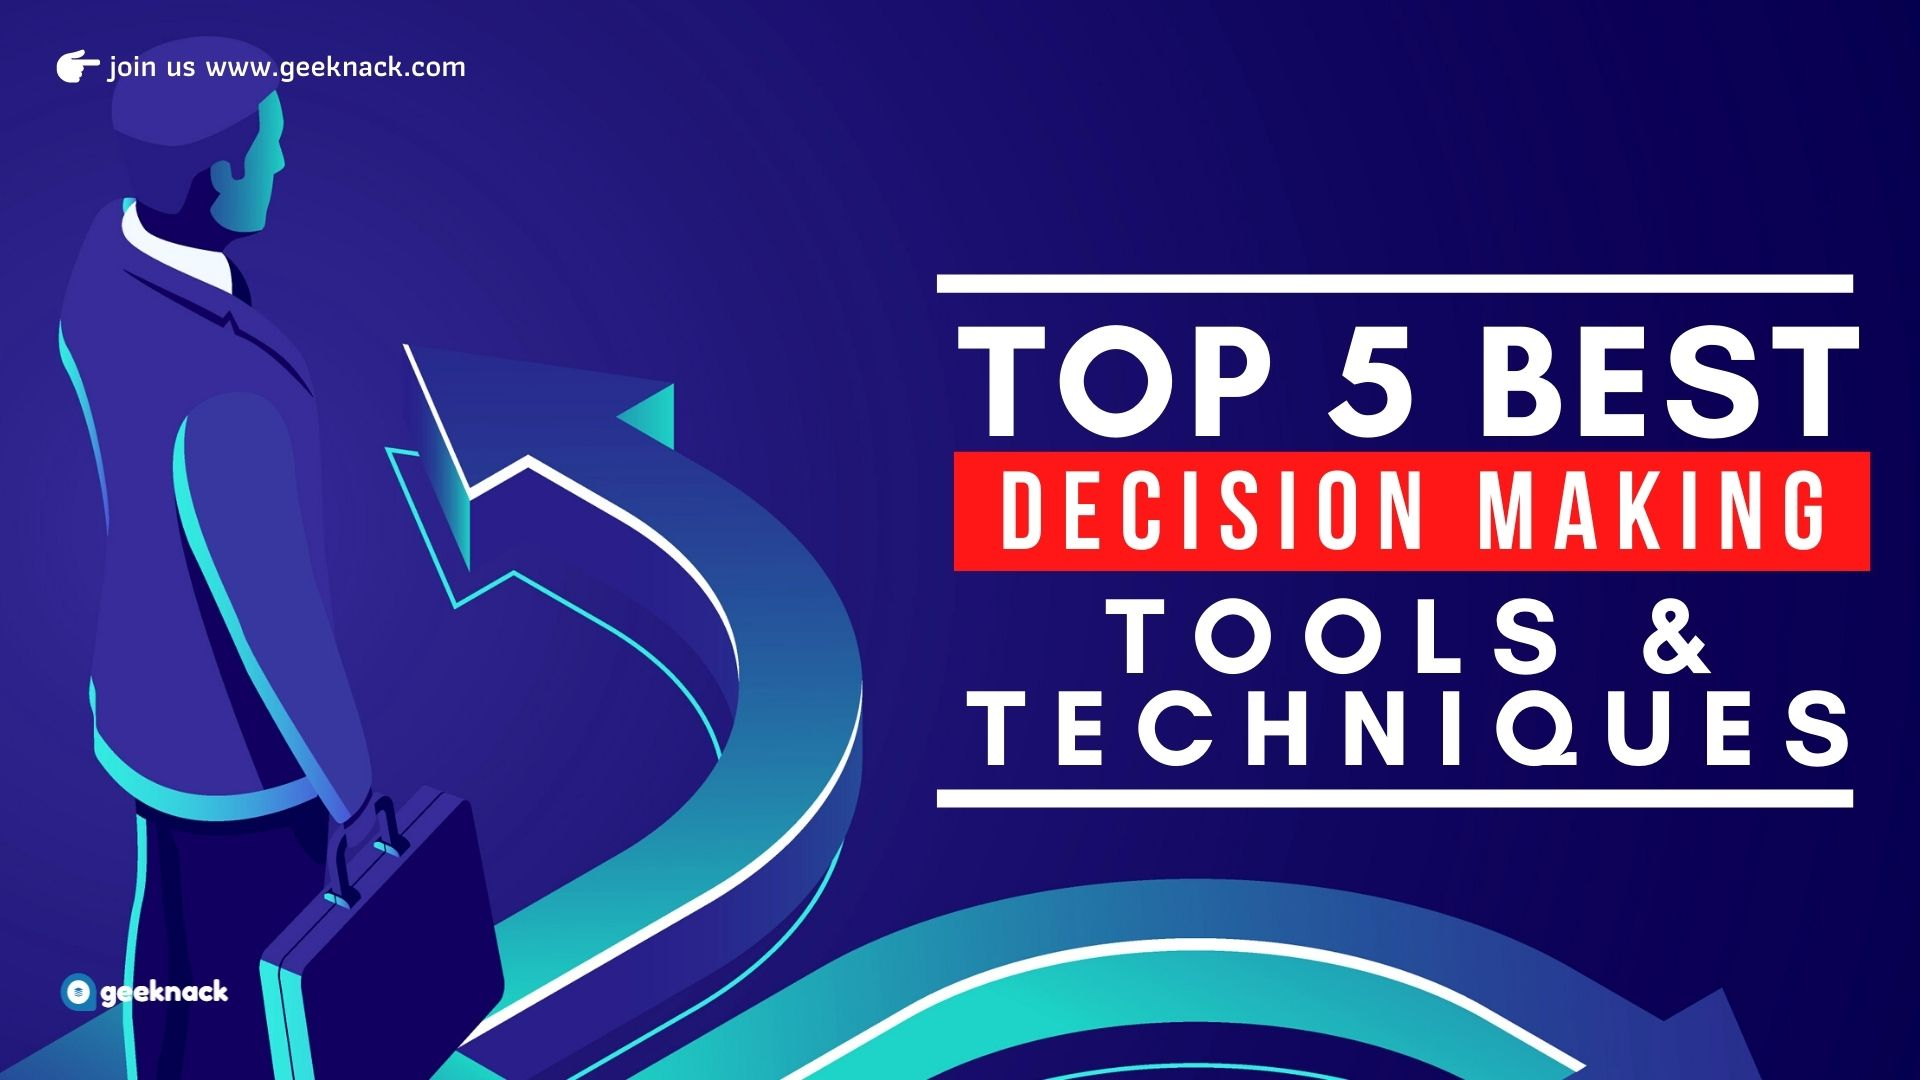 Top 5 Best Decision Making Tools and Techniques cover